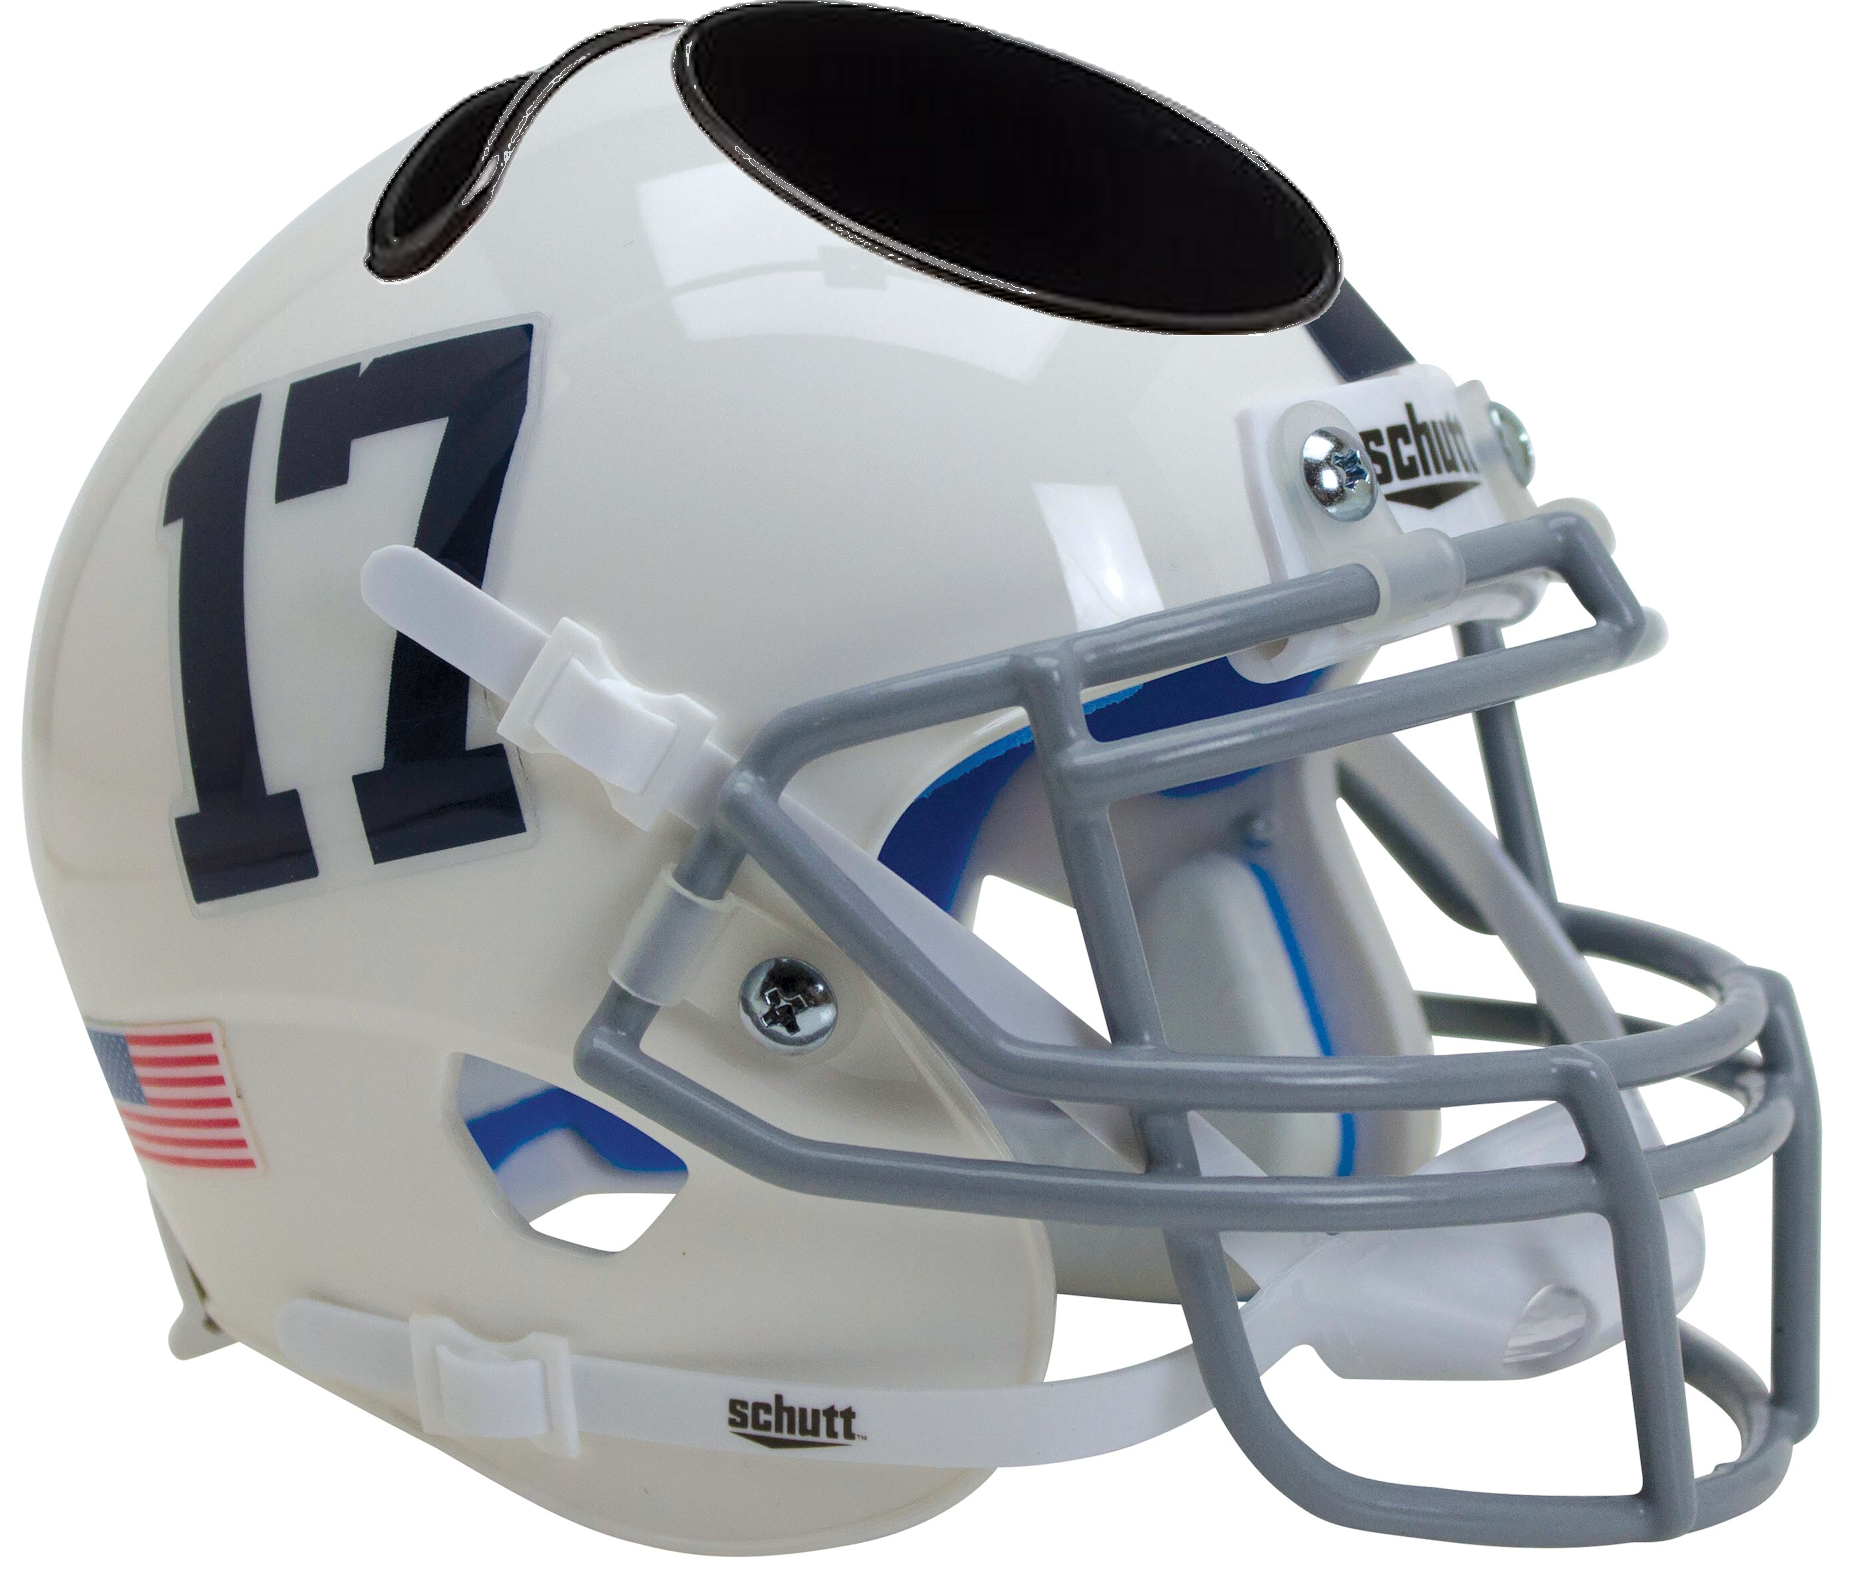 Penn State Nittany Lions Miniature Football Helmet Desk Caddy <B>White Number 17</B>